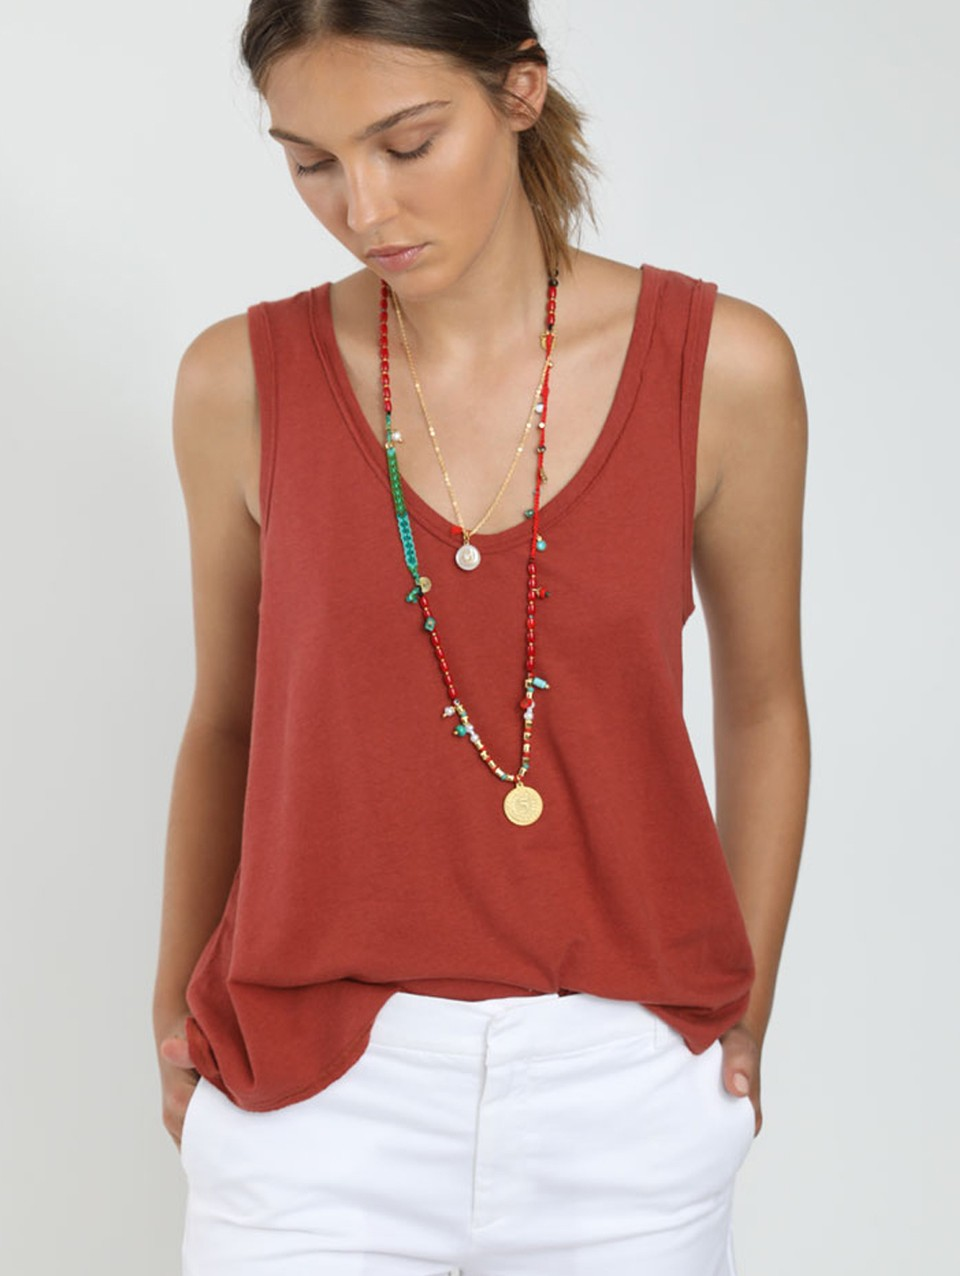 Luck & Blessing Necklace